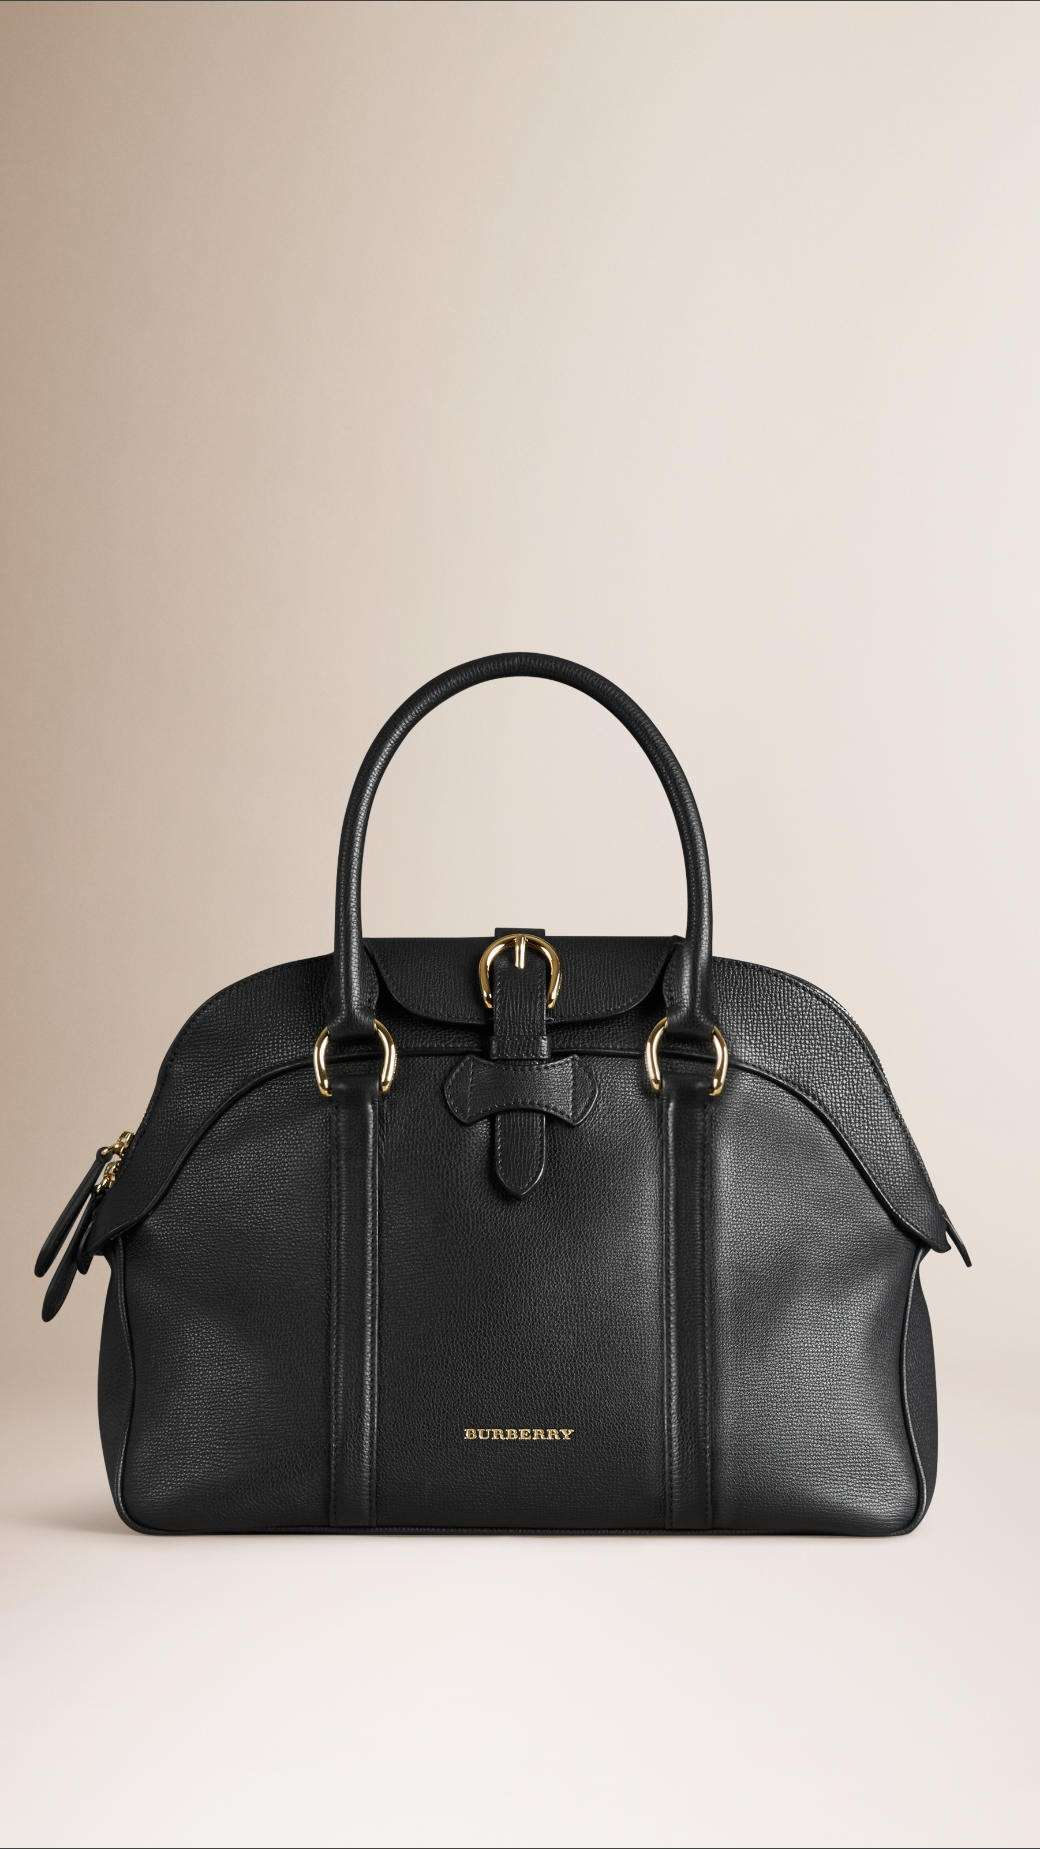 Handbag nera Burberry